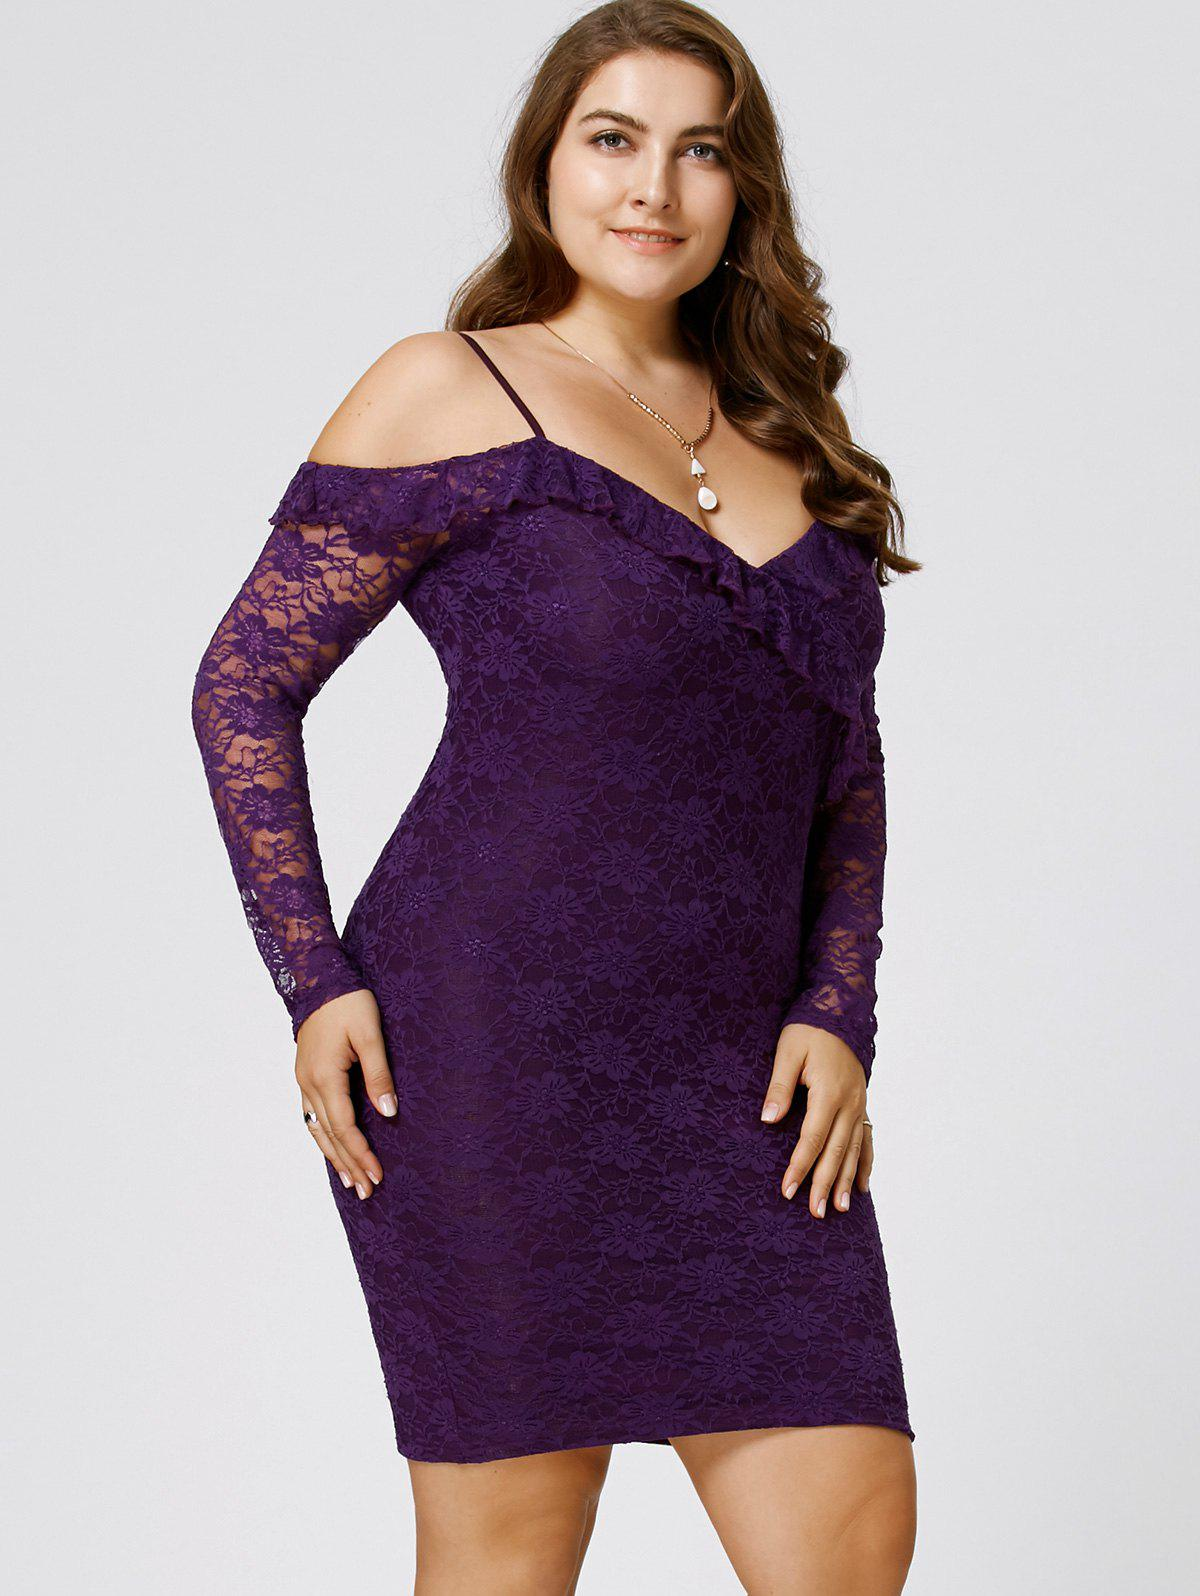 Plus Size Dew Shoulder Frill Lace Bodycon Dress - PURPLE 5XL